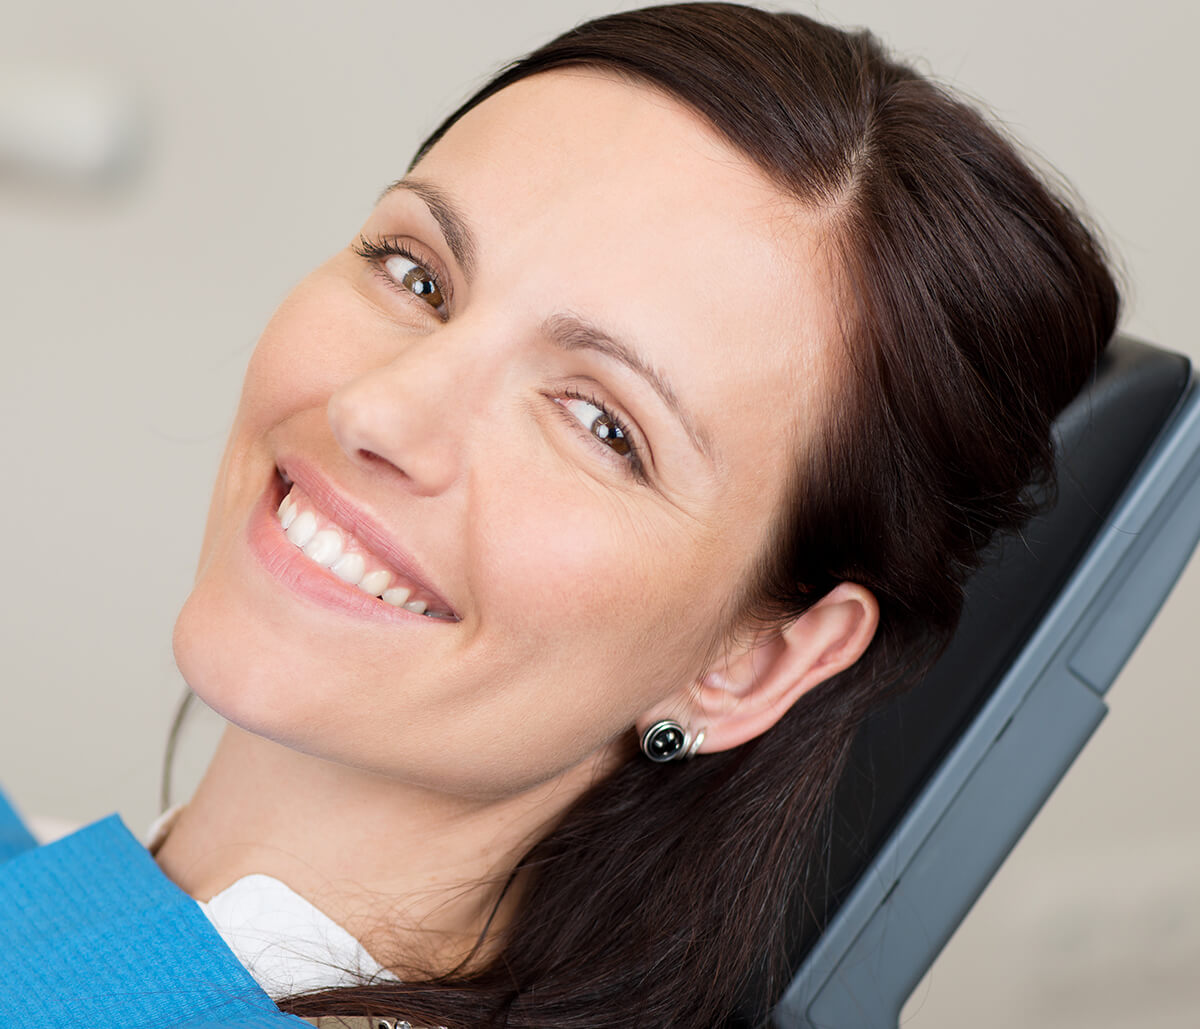 Dentist in Scottsdale Talking About the Wonderful Benefits Offered by Full Mouth Dental Implants